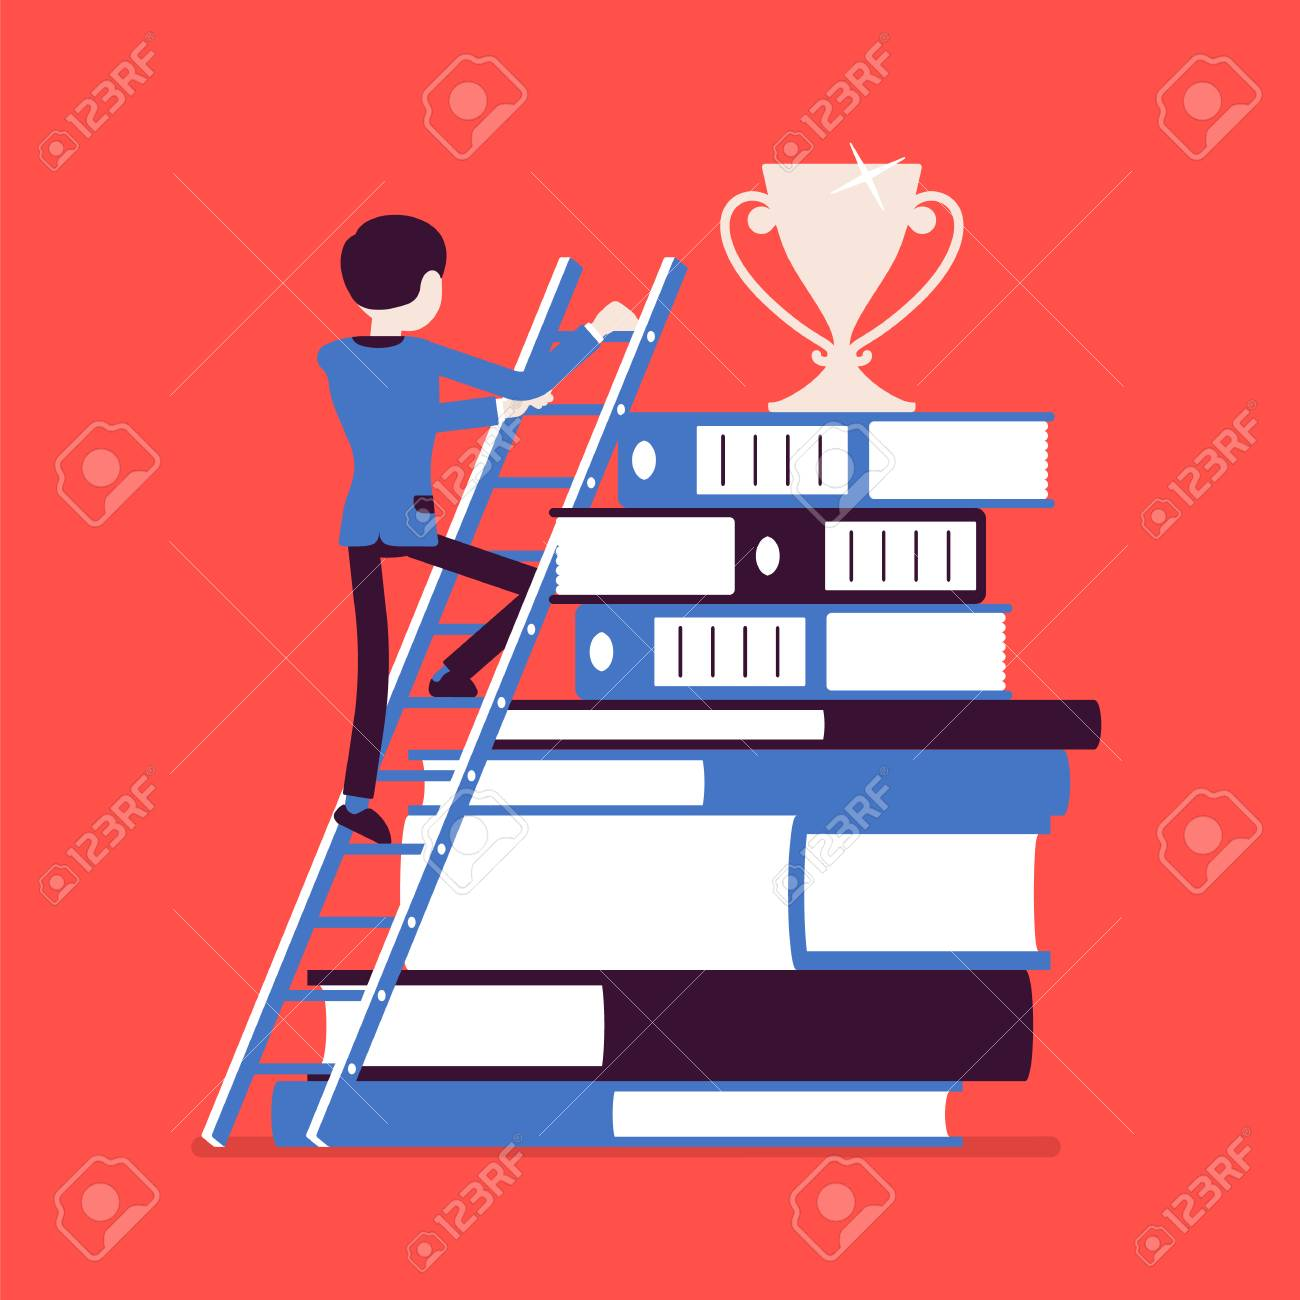 Acomplishment ladder to success. businessman in move to reach top, accomplishment..